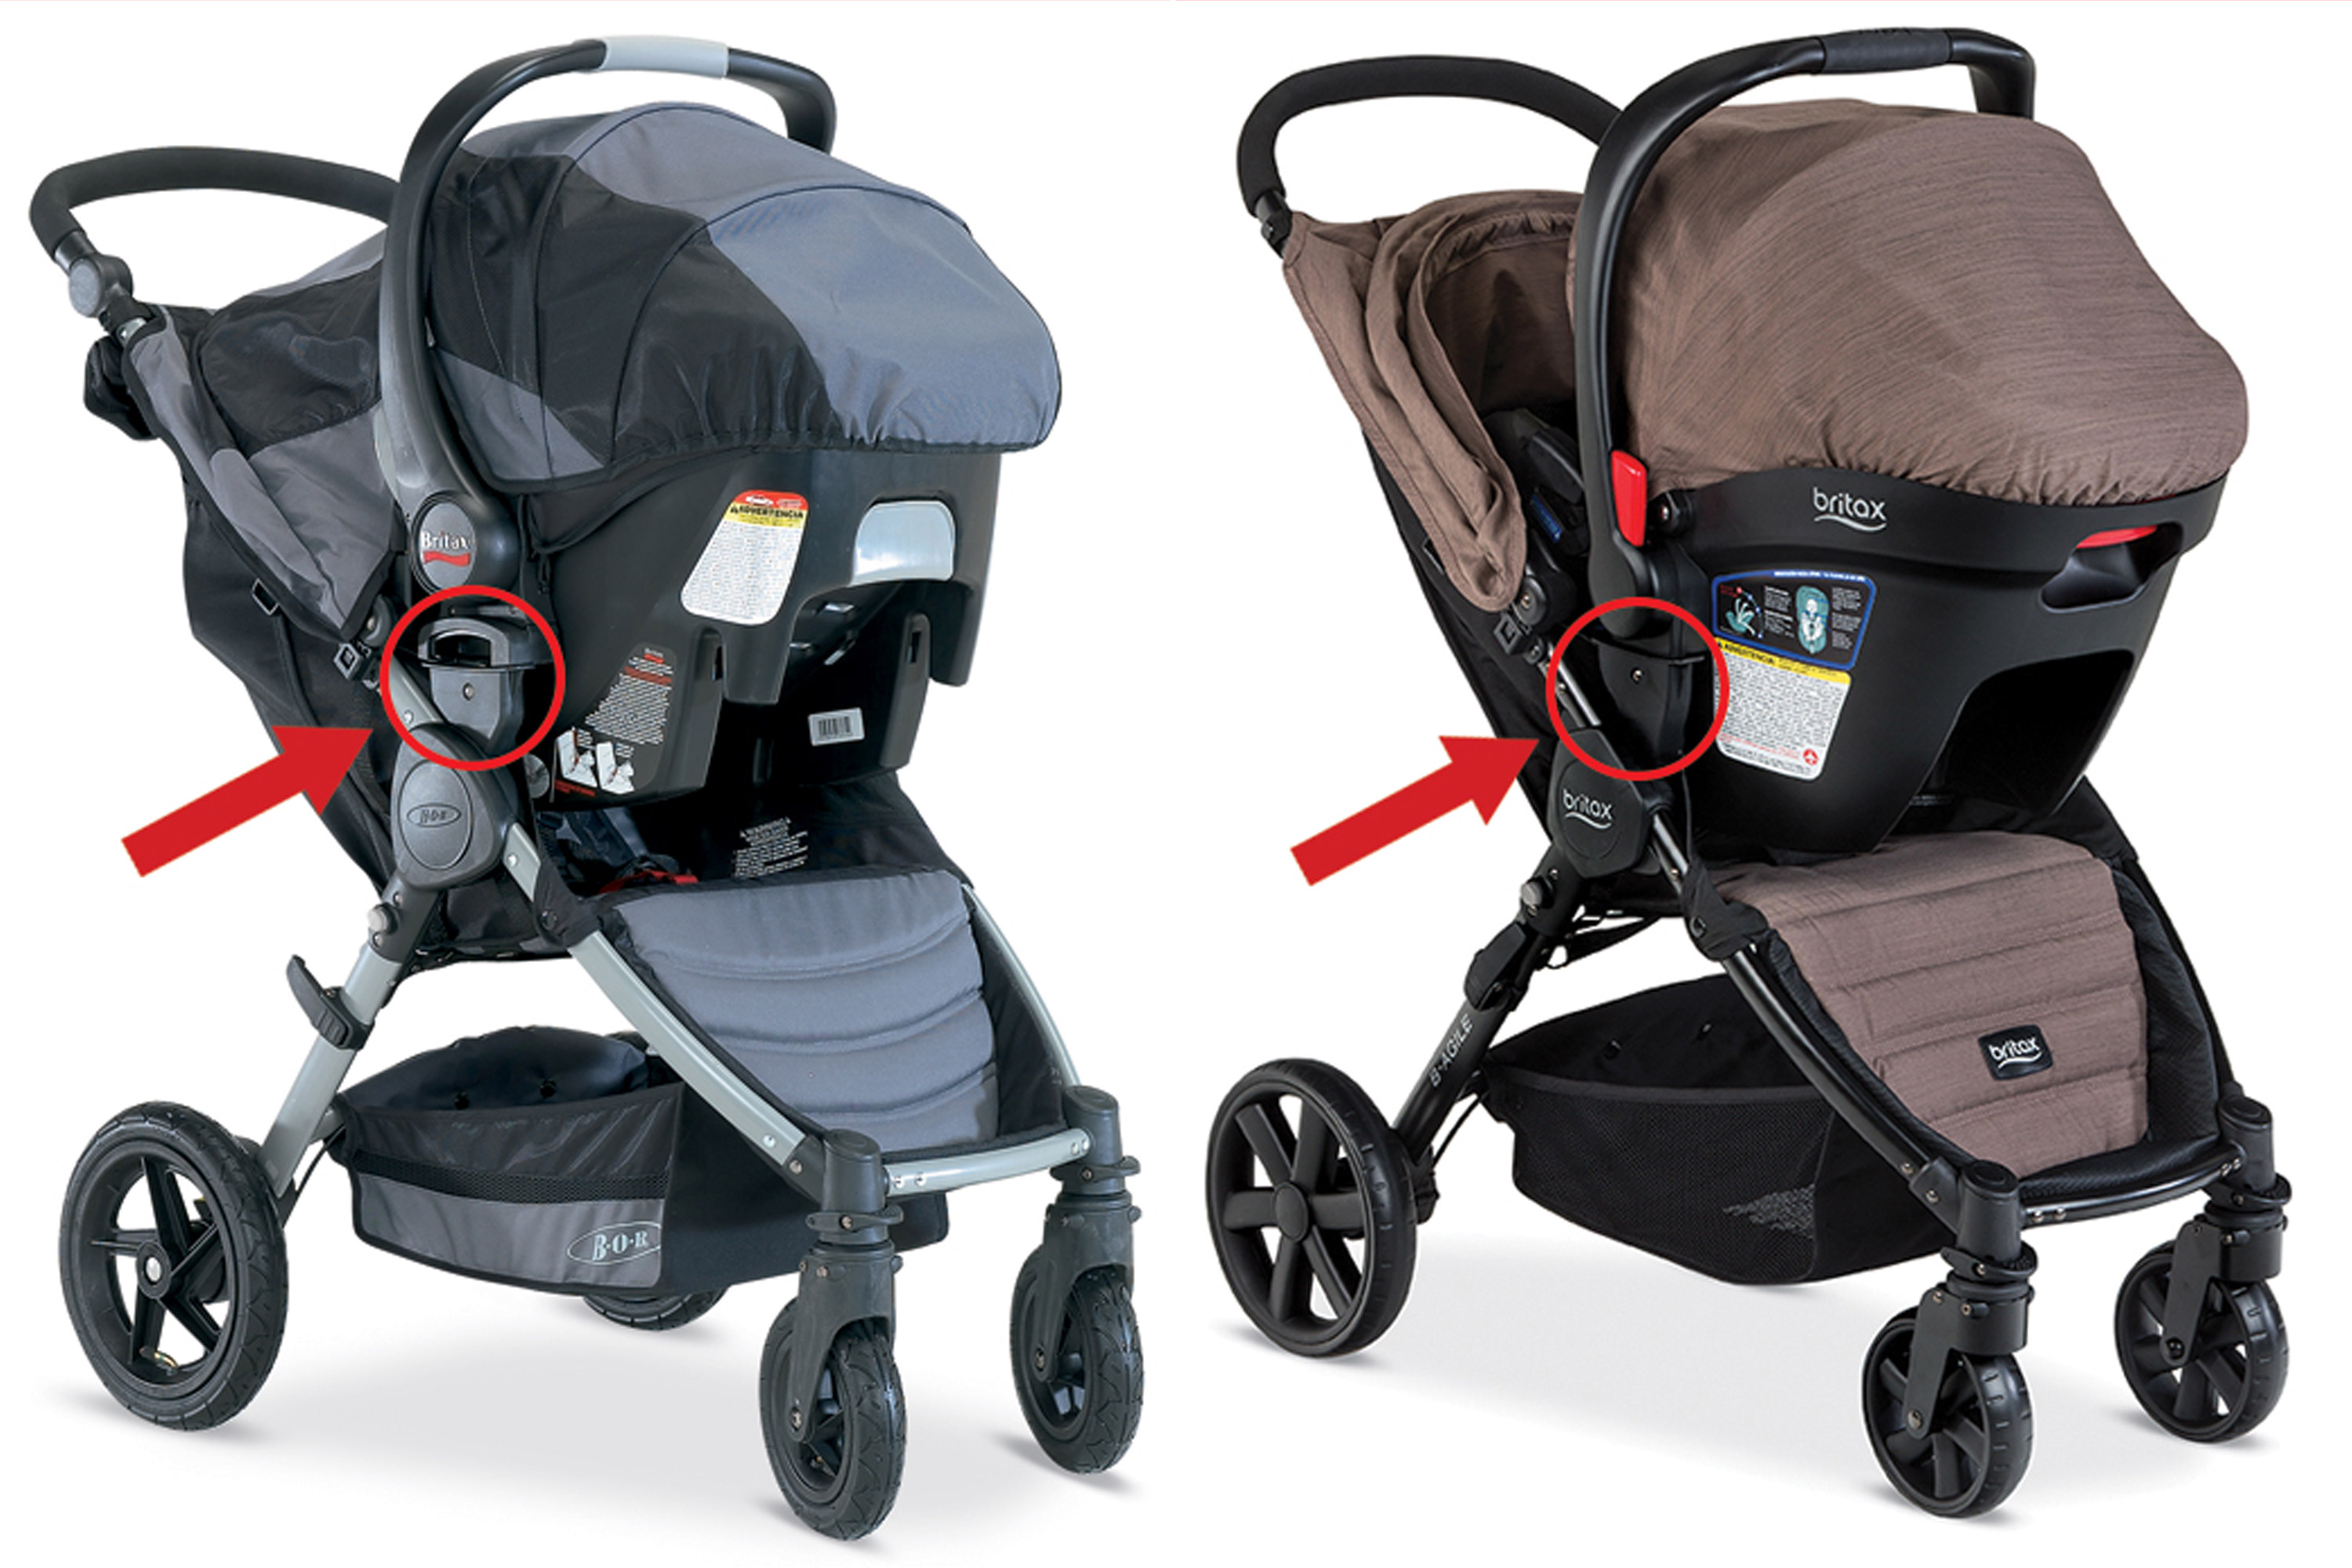 Color variations of the Bob Motion and B-Agile strollers.